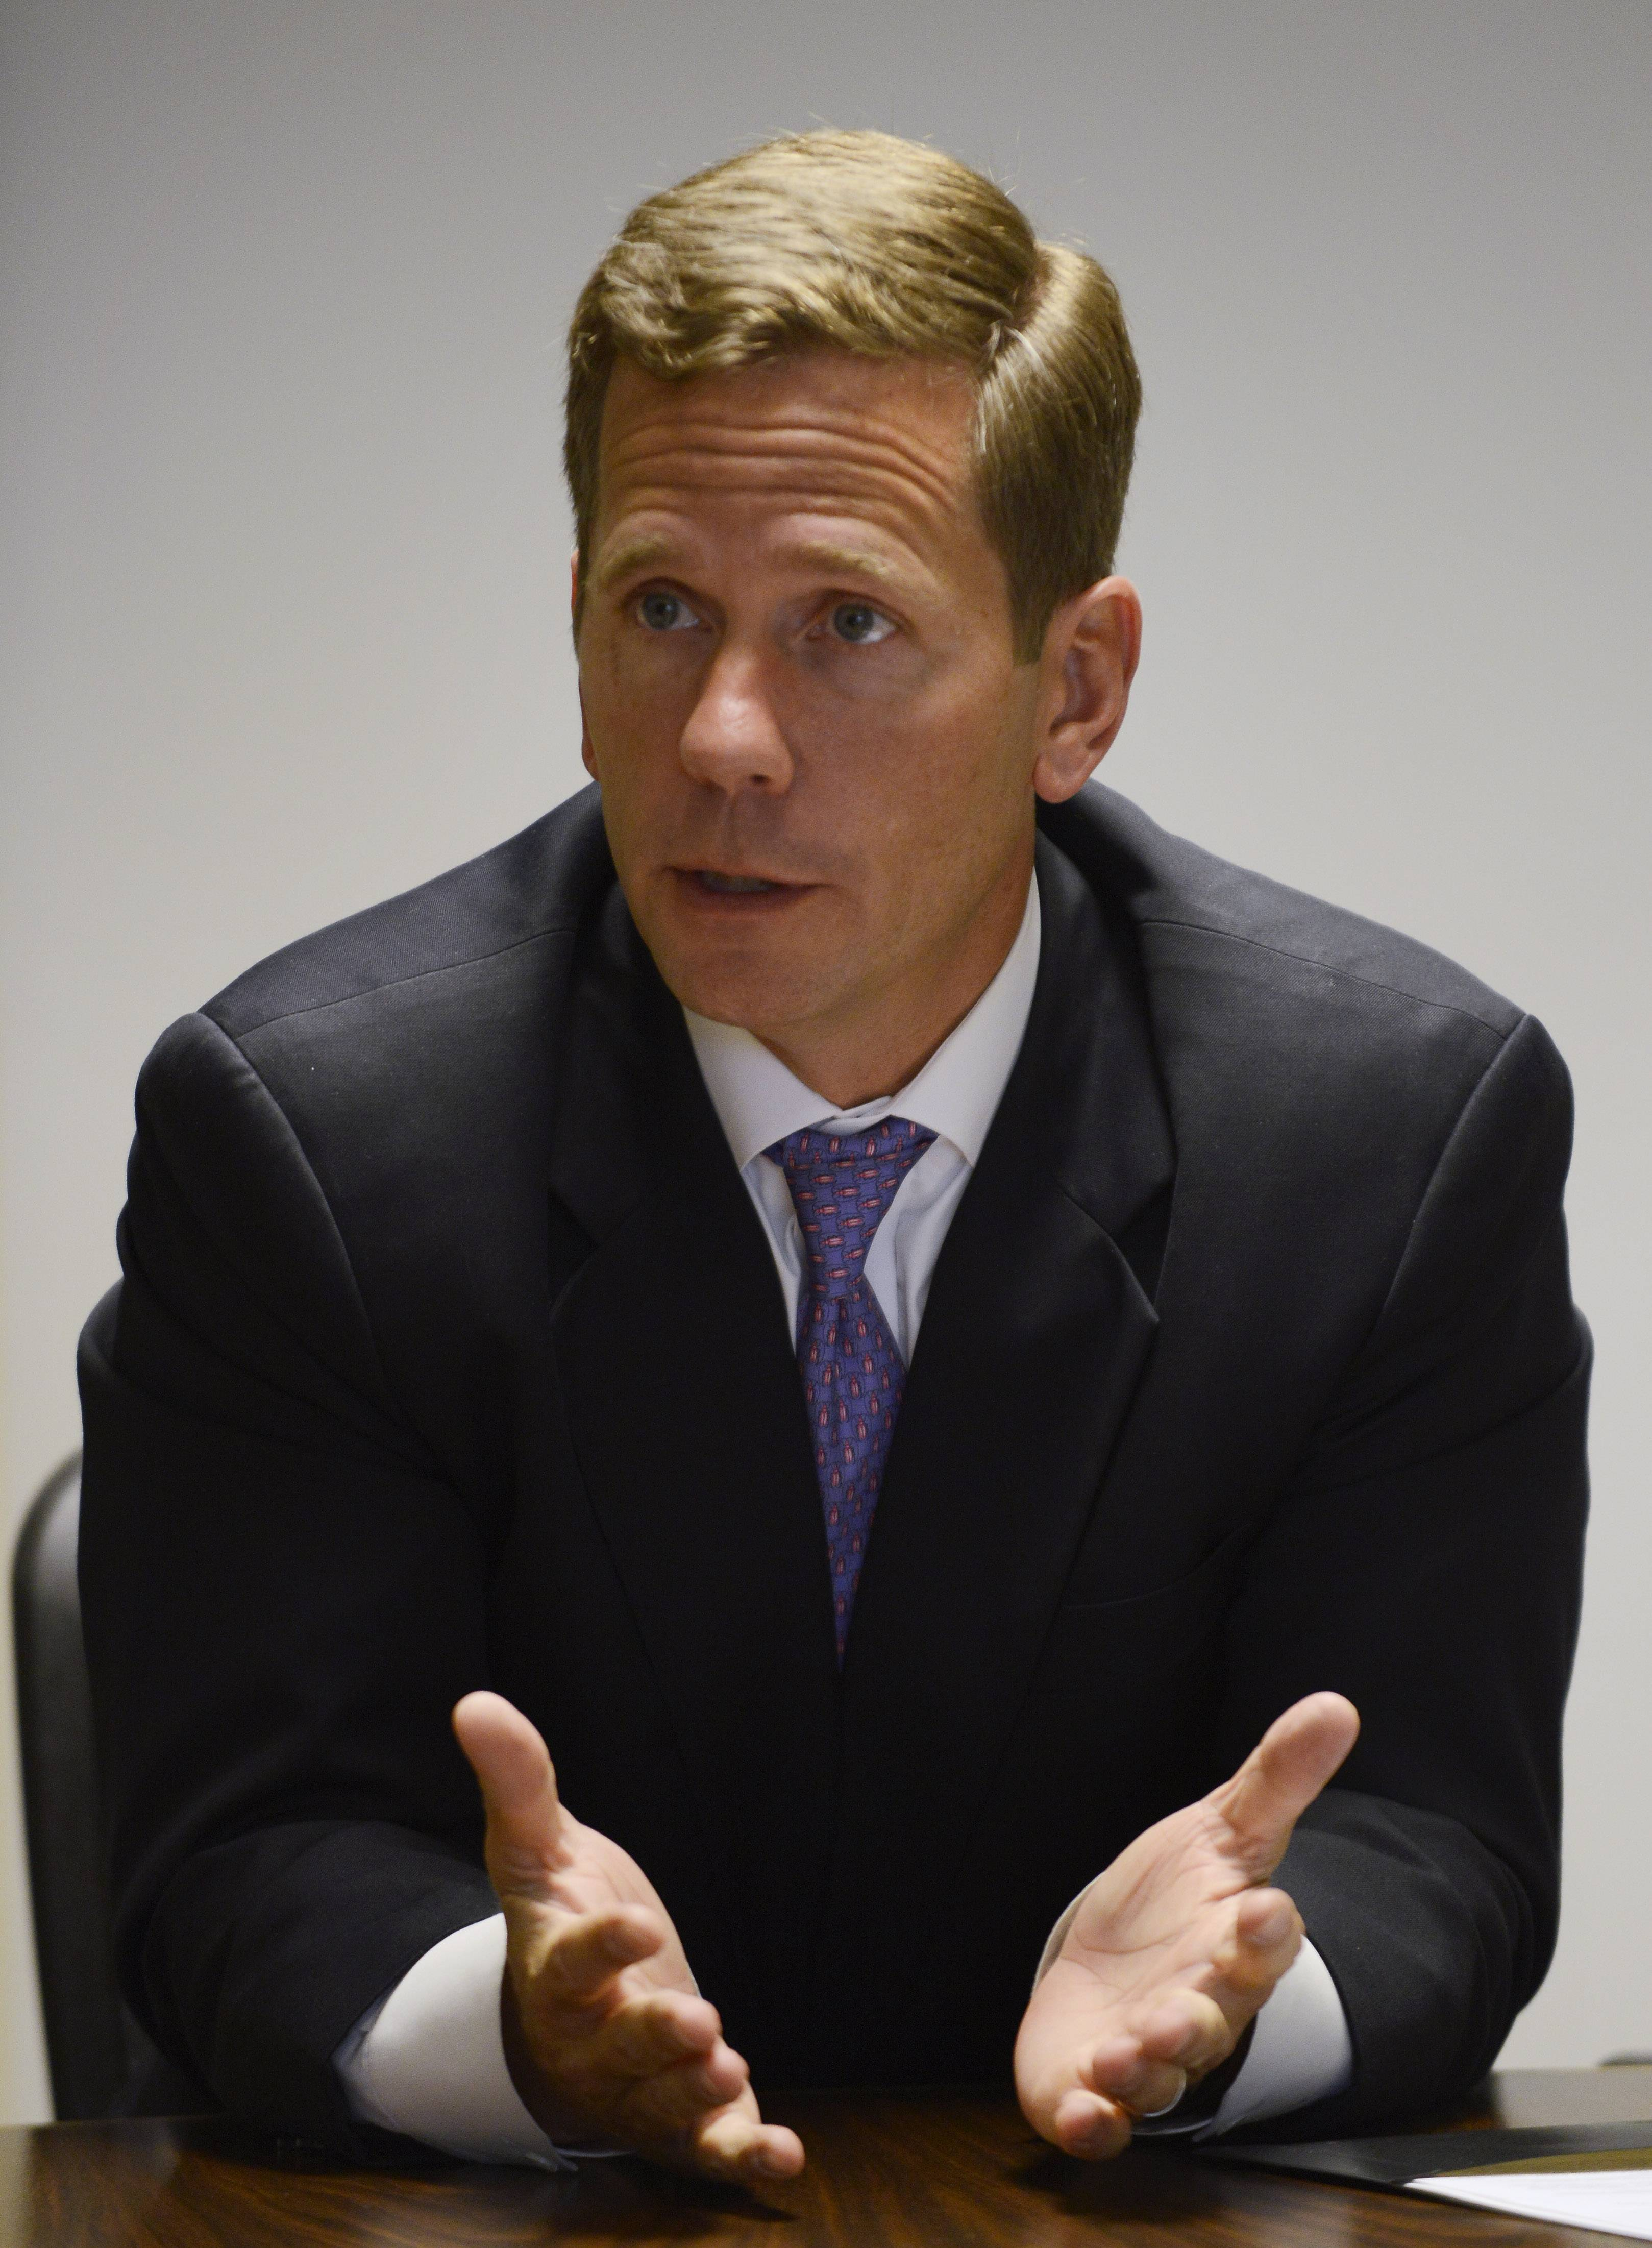 Dold plans national speech on heroin crisis as campaign gets underway